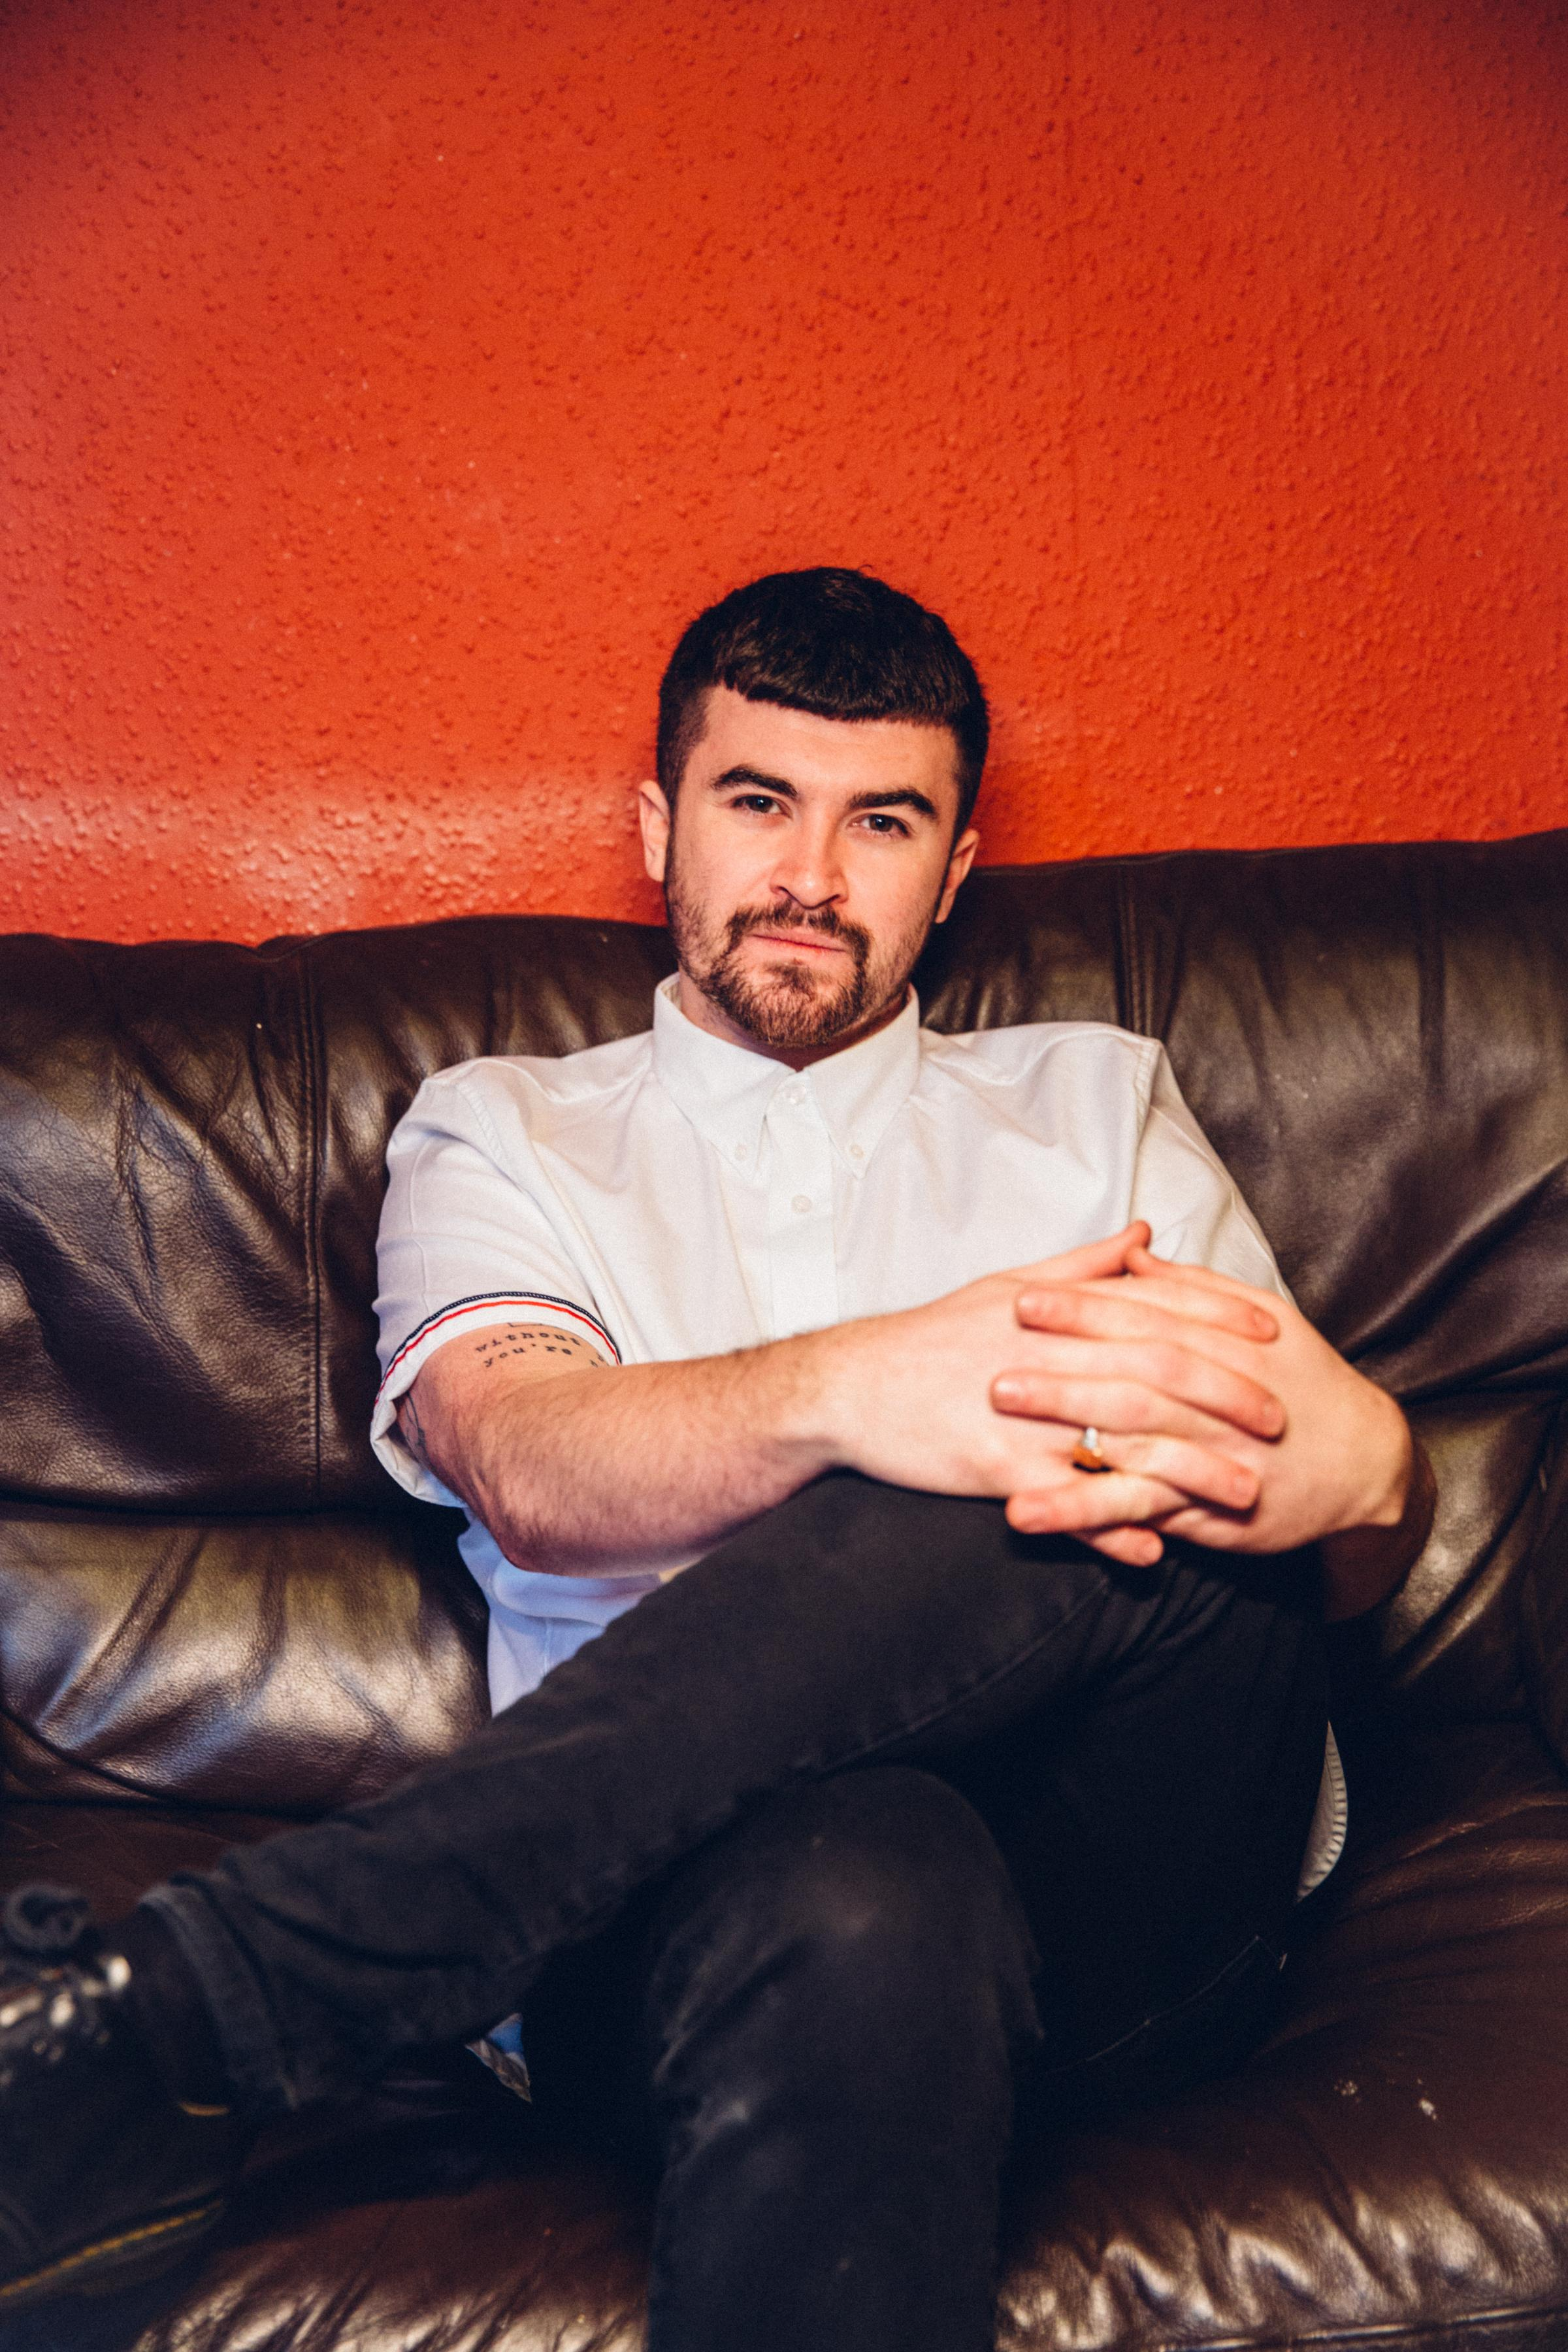 Sean McGowan is playing a homecoming gig at The Joiners